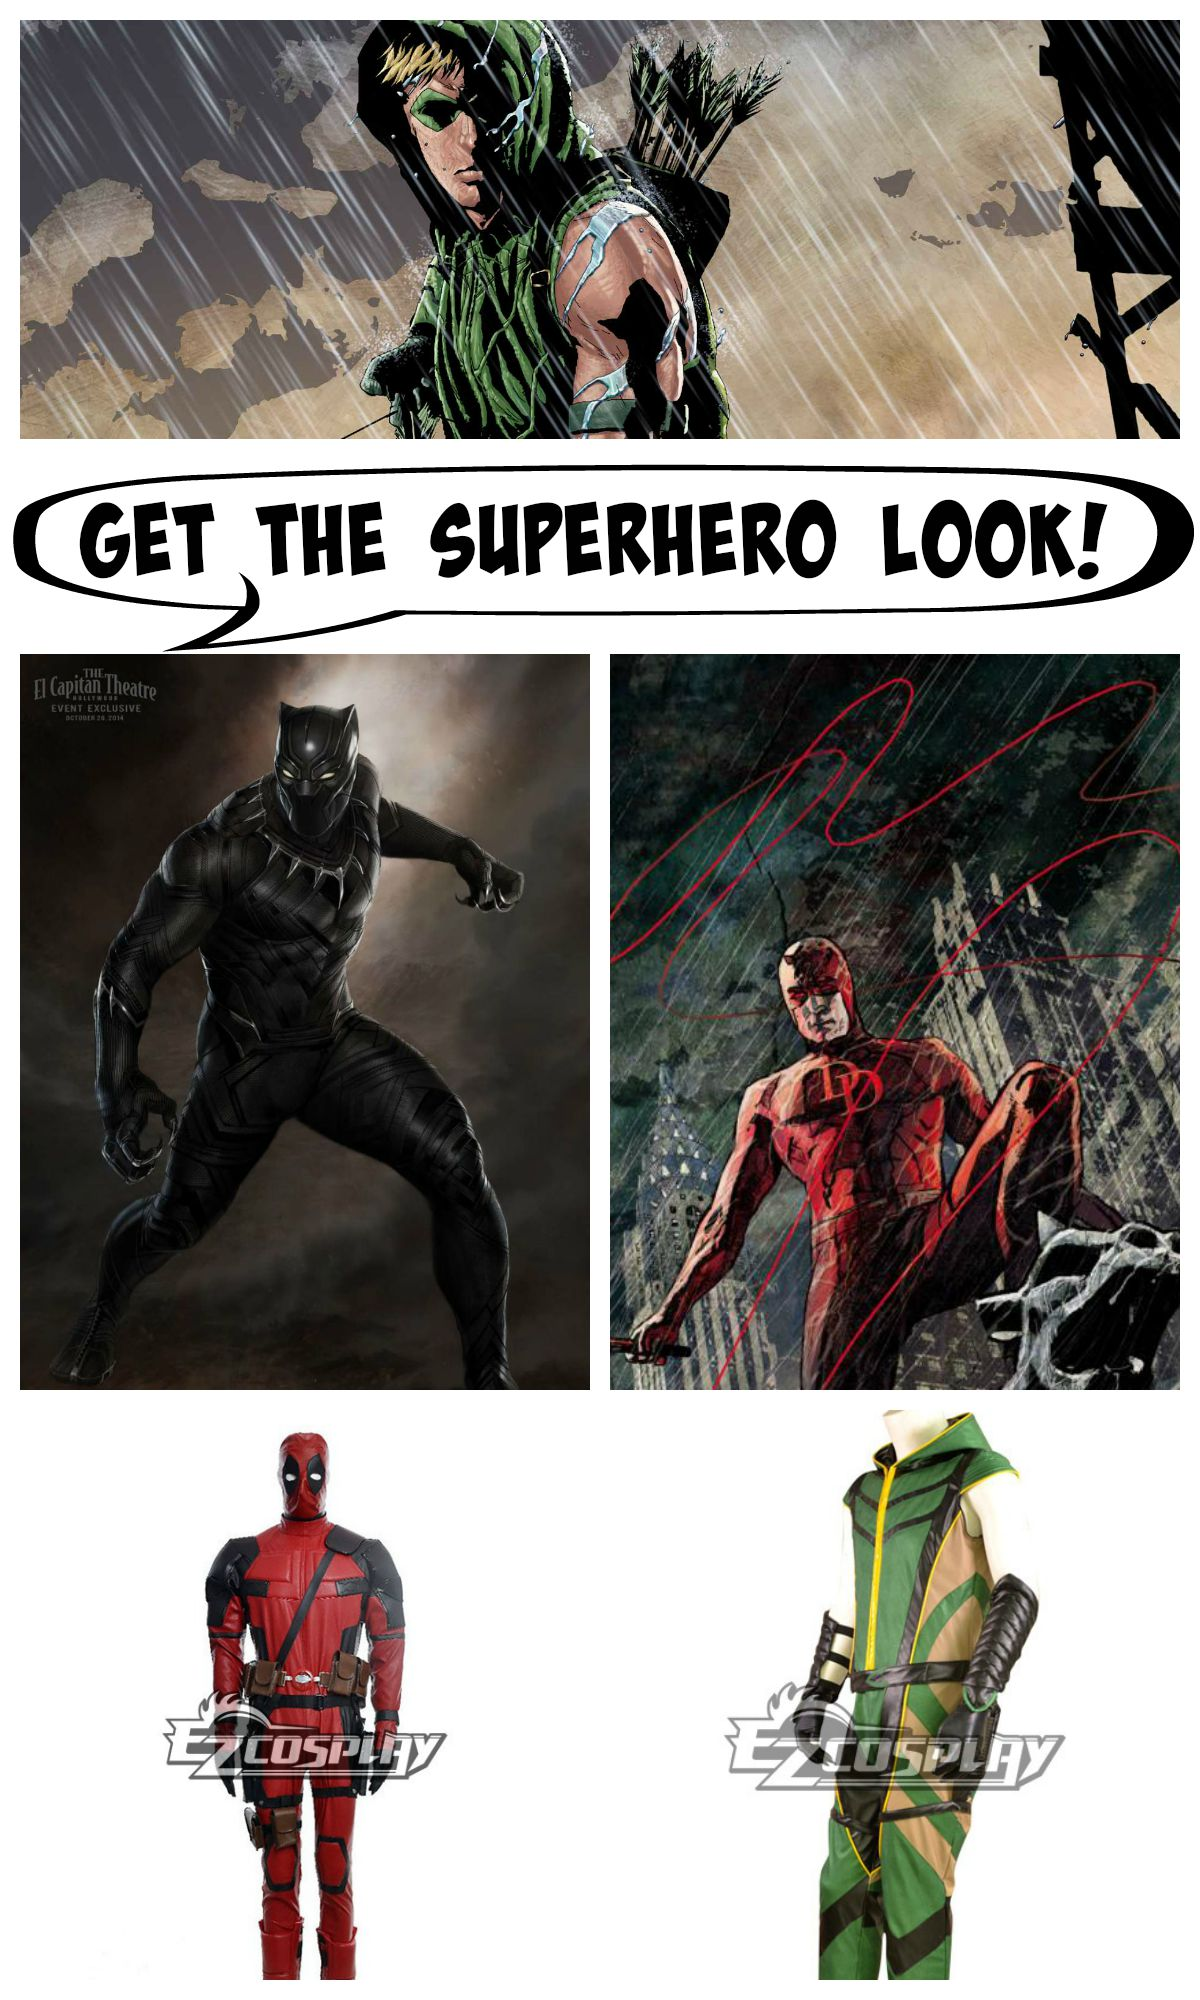 Superhero Men Collage